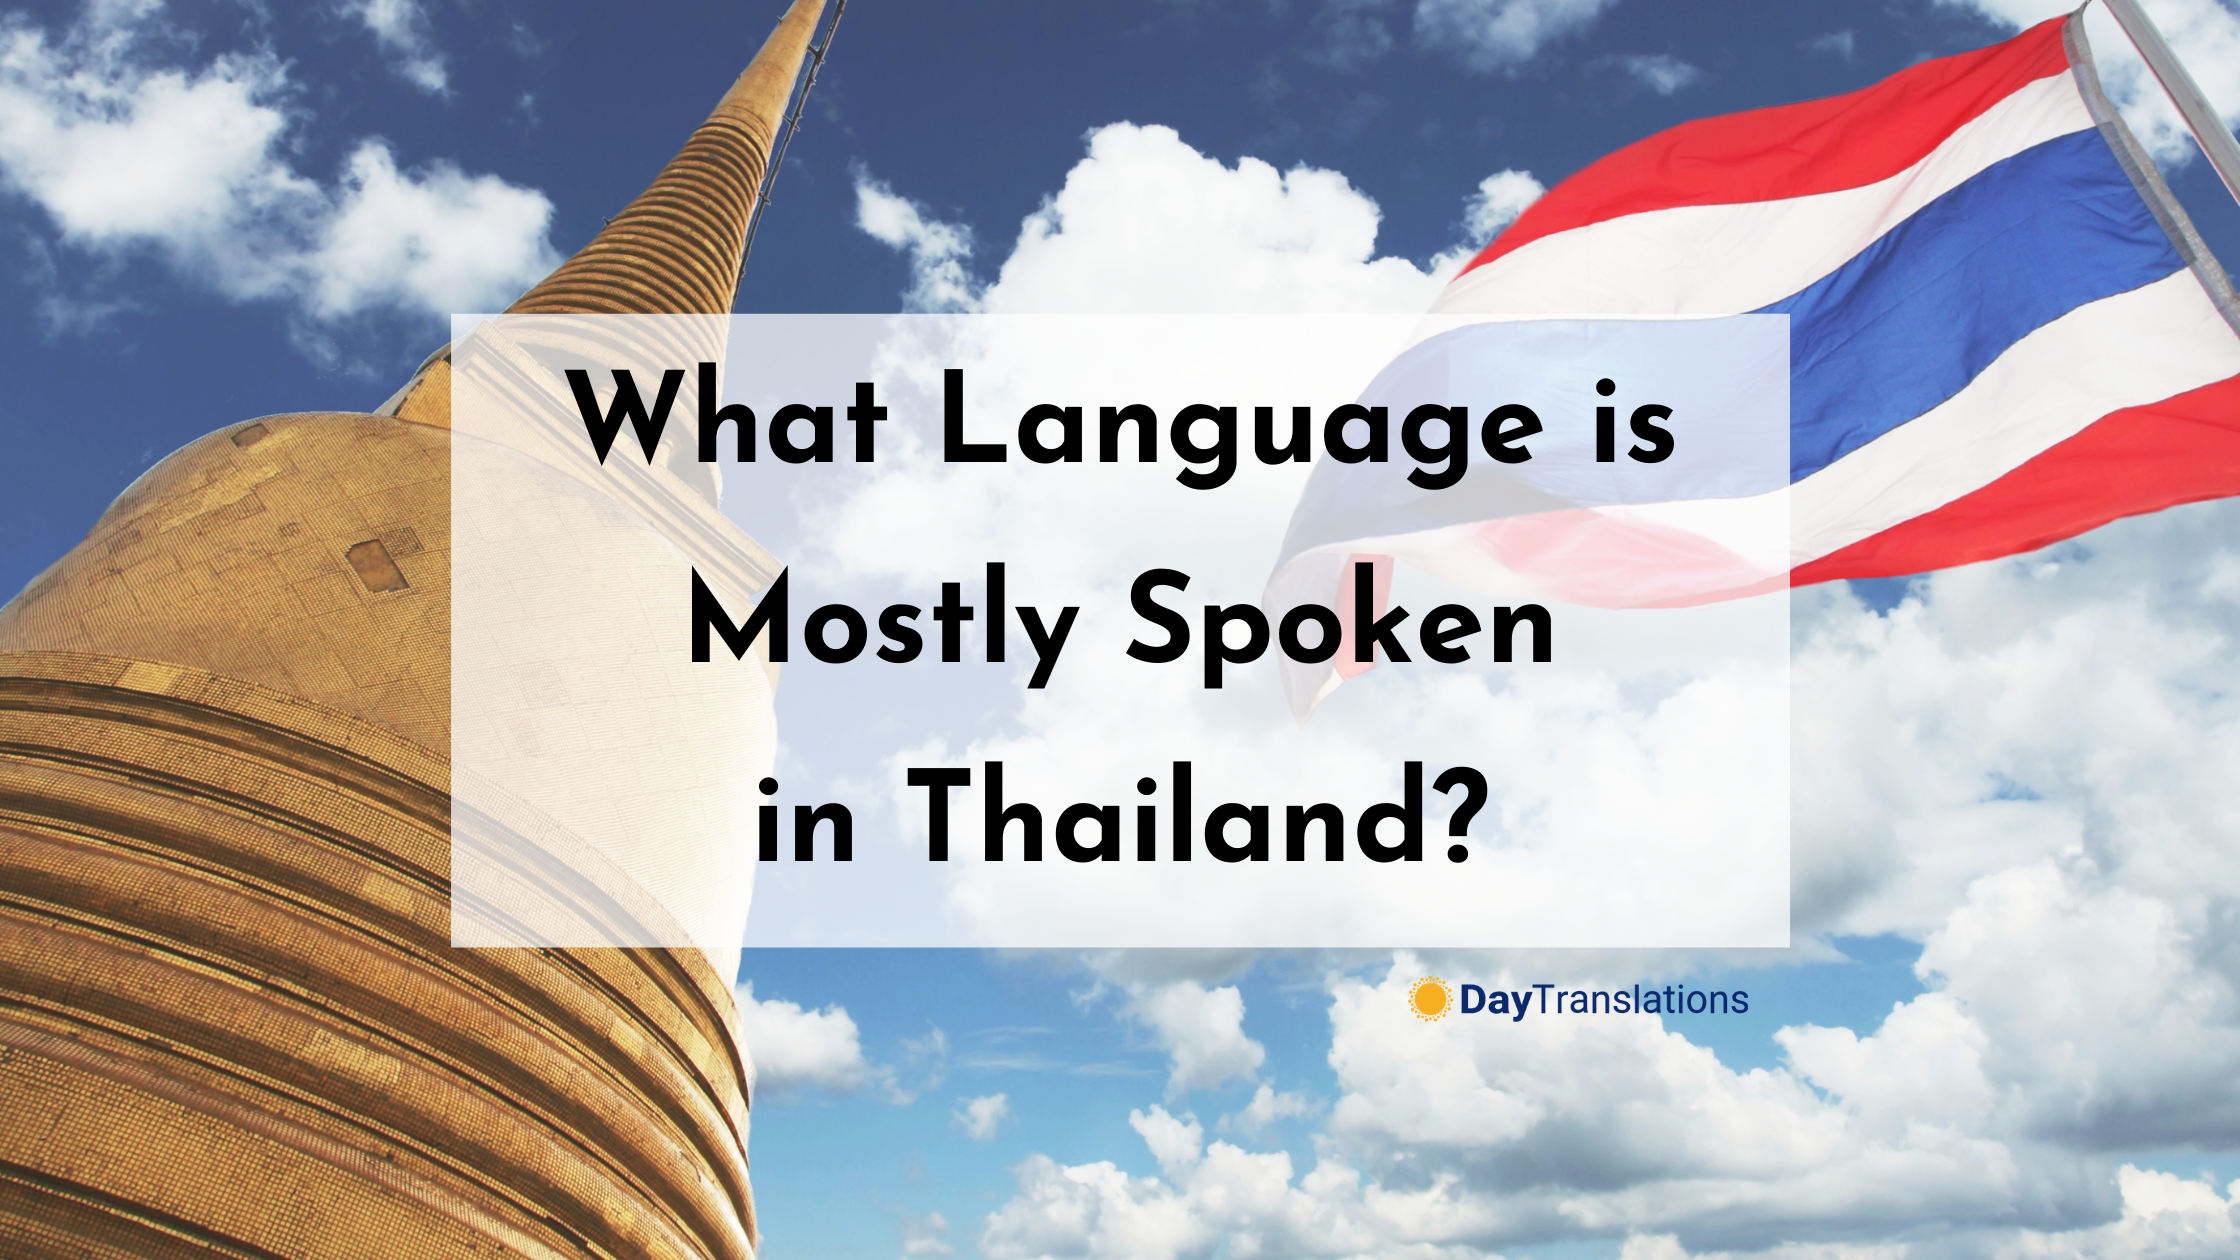 What Language is Mostly Spoken in Thailand?